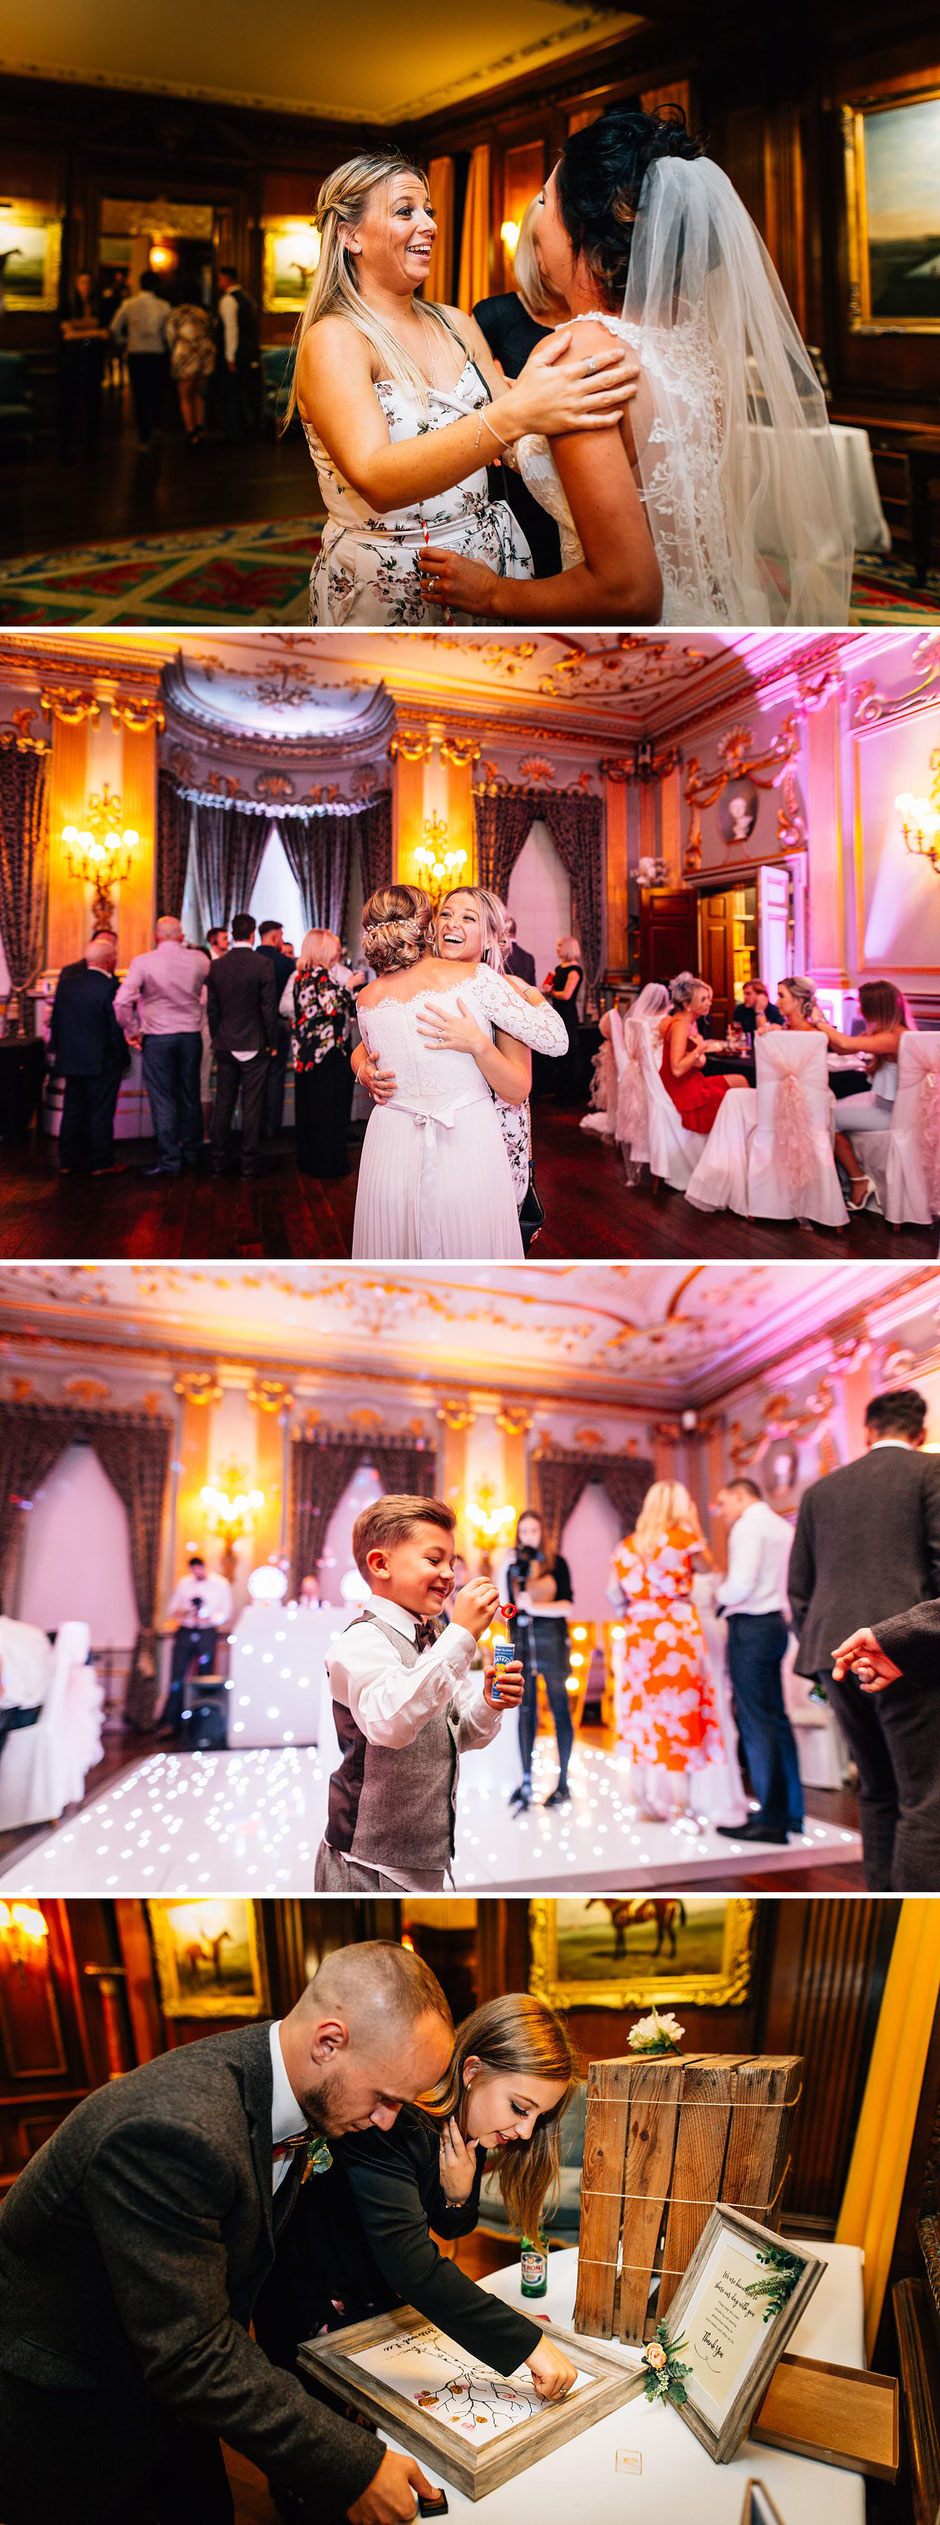 collection of photographs from an evening wedding reception